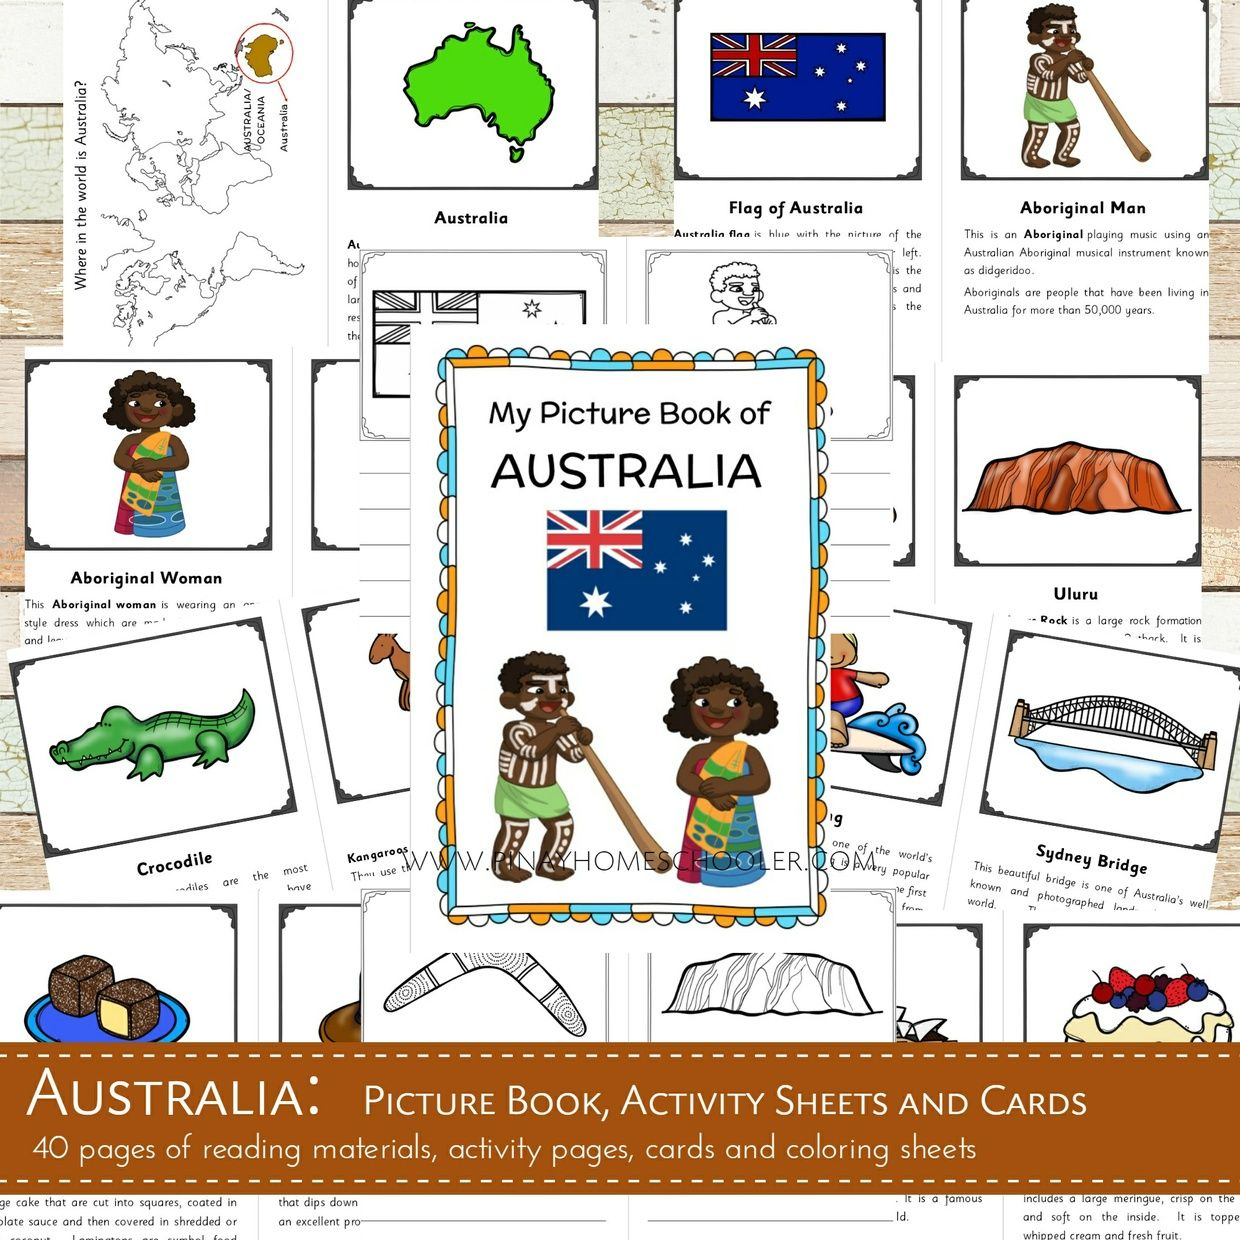 This Contains Learning Materials For Introducing Australia